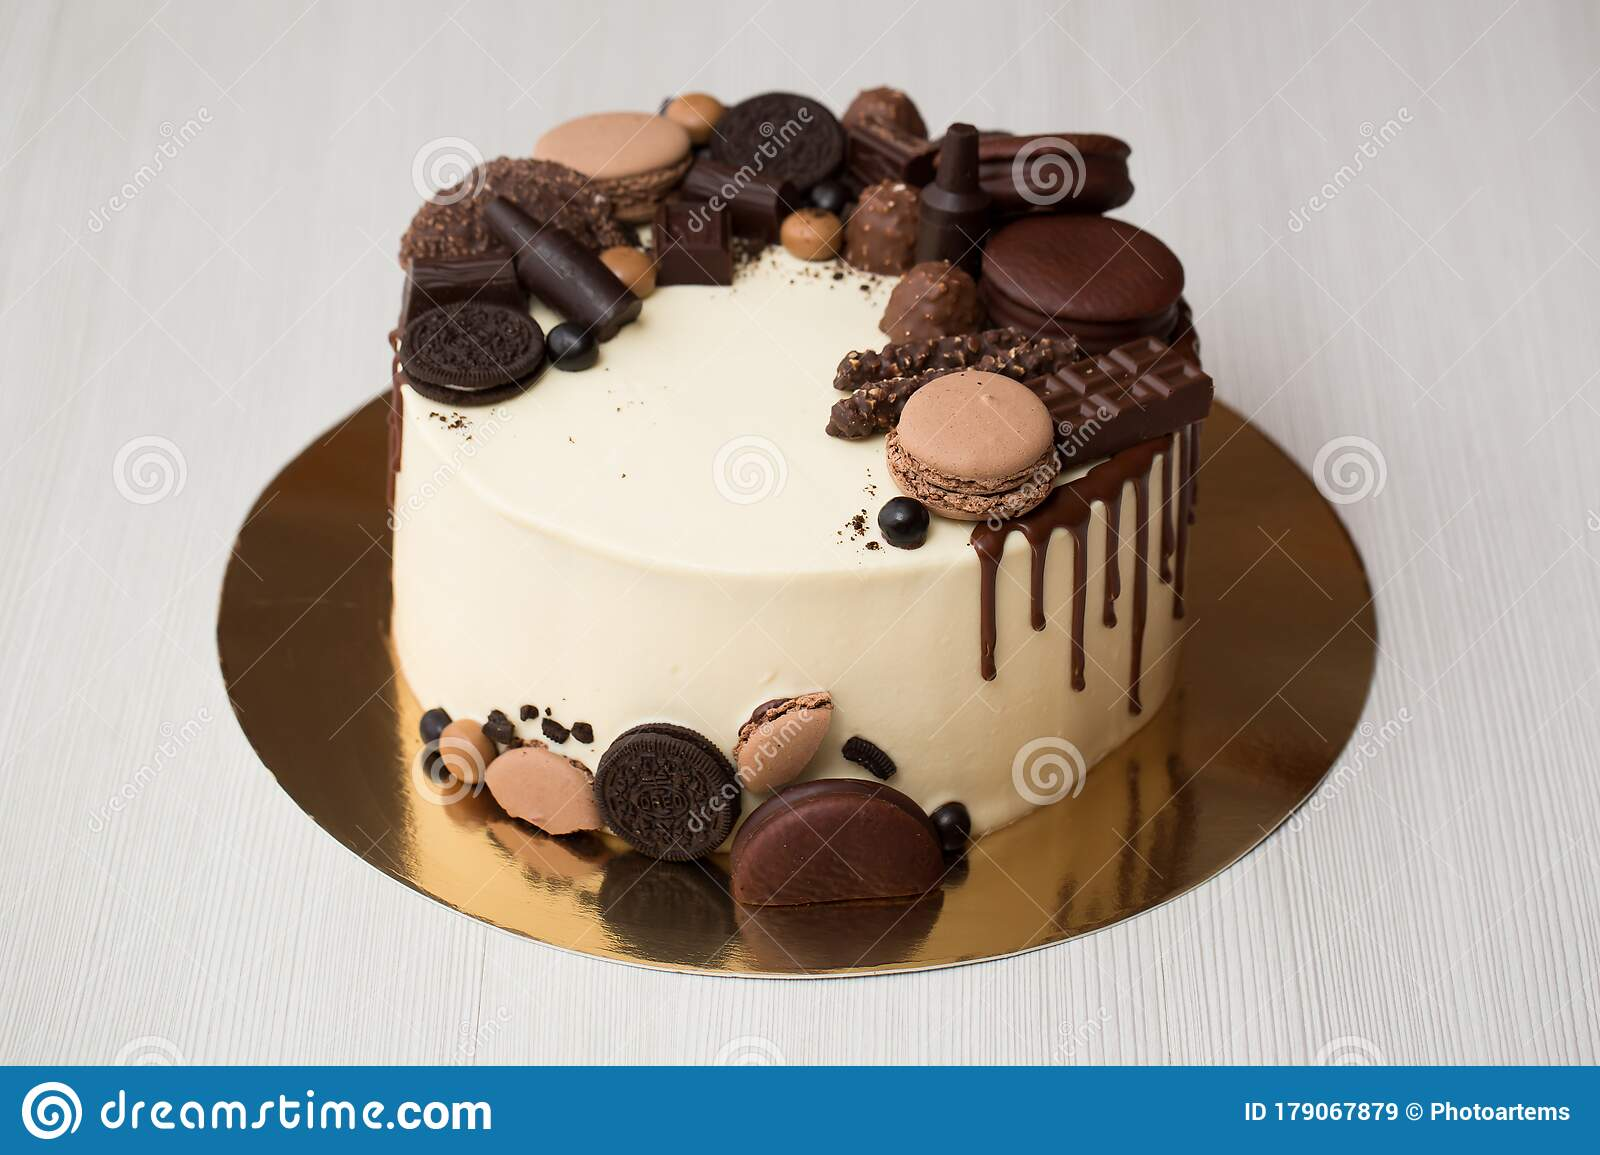 See more ideas about cake desserts, cake, cake decorating. Chocolate Cake For Men With Chocolate Decorations And The Streaks Of Chocolate Stock Image Image Of Fork Chocolate 179067879